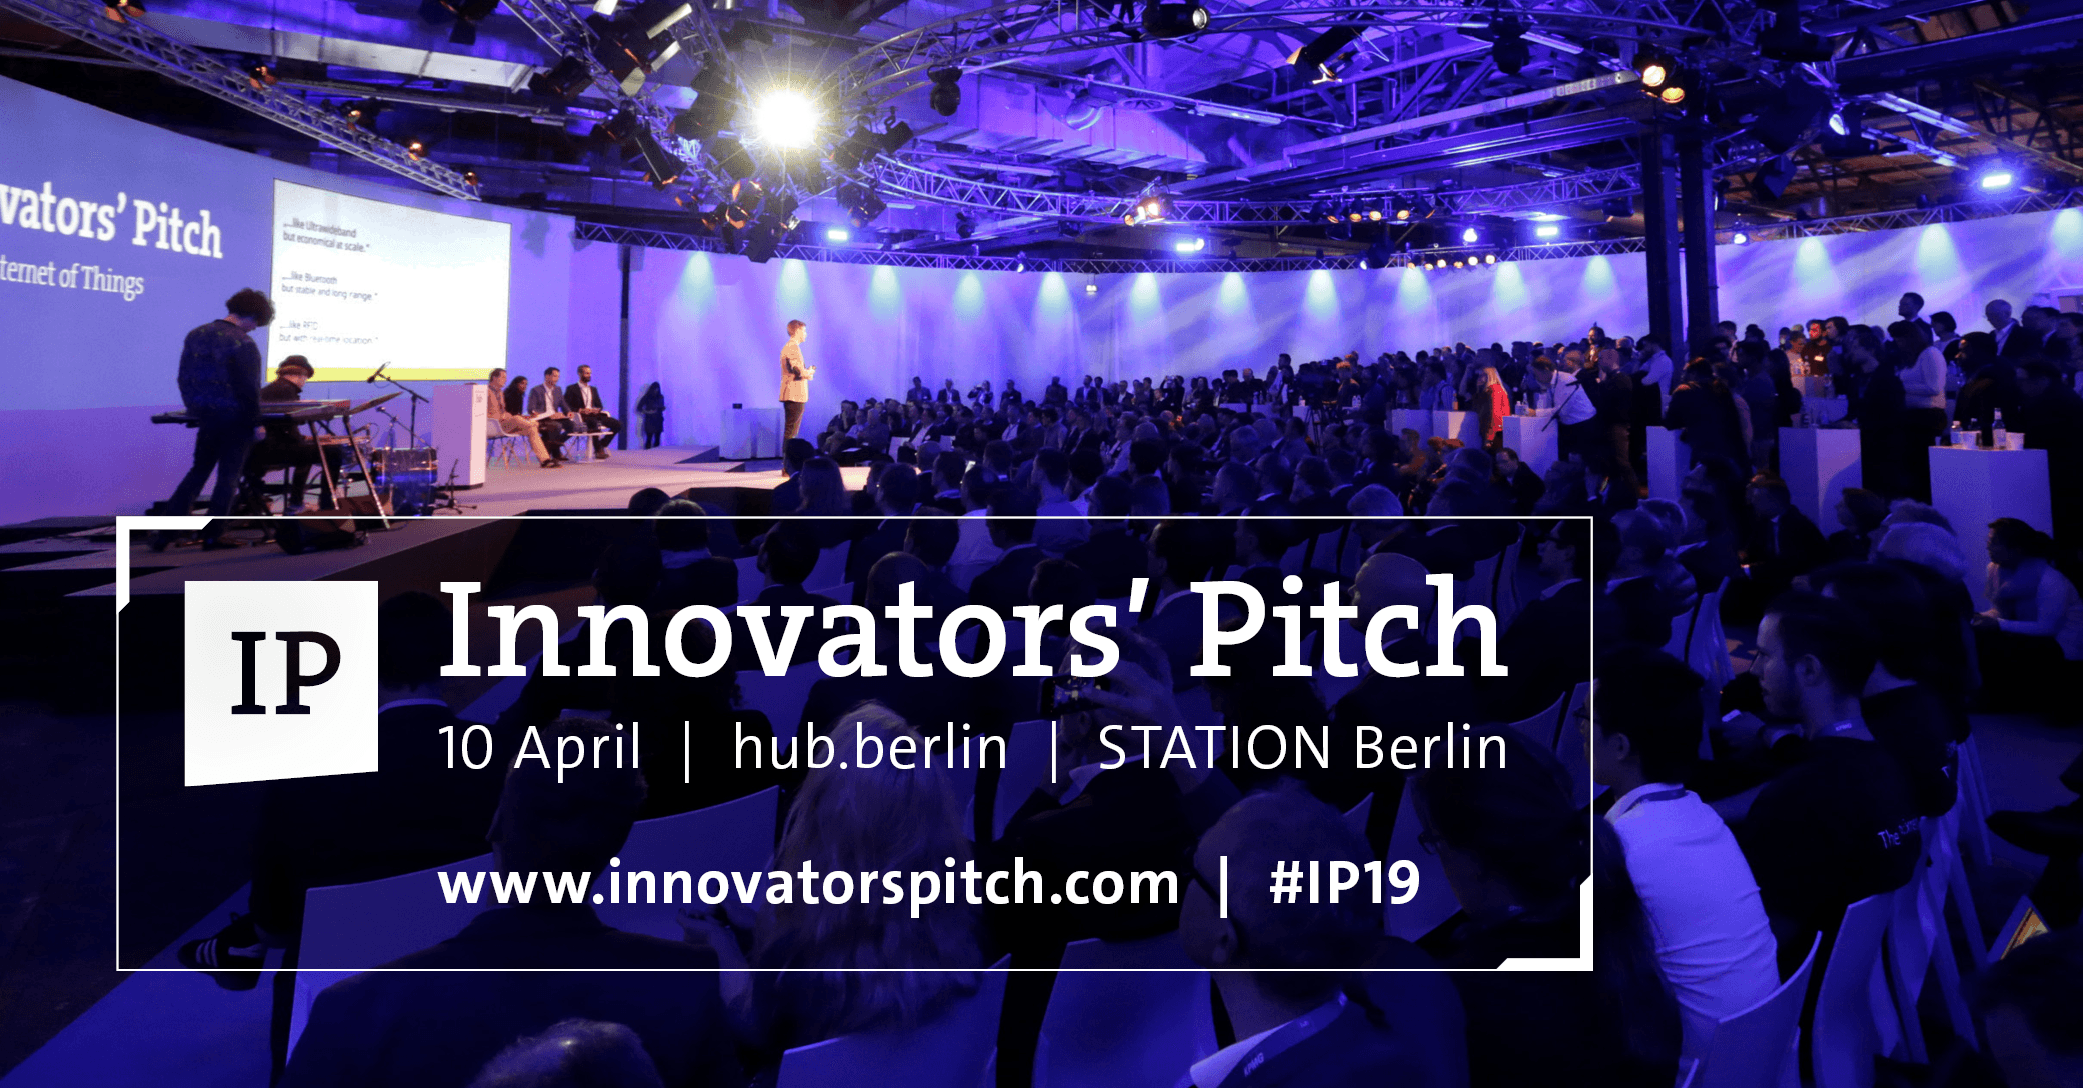 The Innovators' Pitch - 10th of April 2019 at STATION Berlin